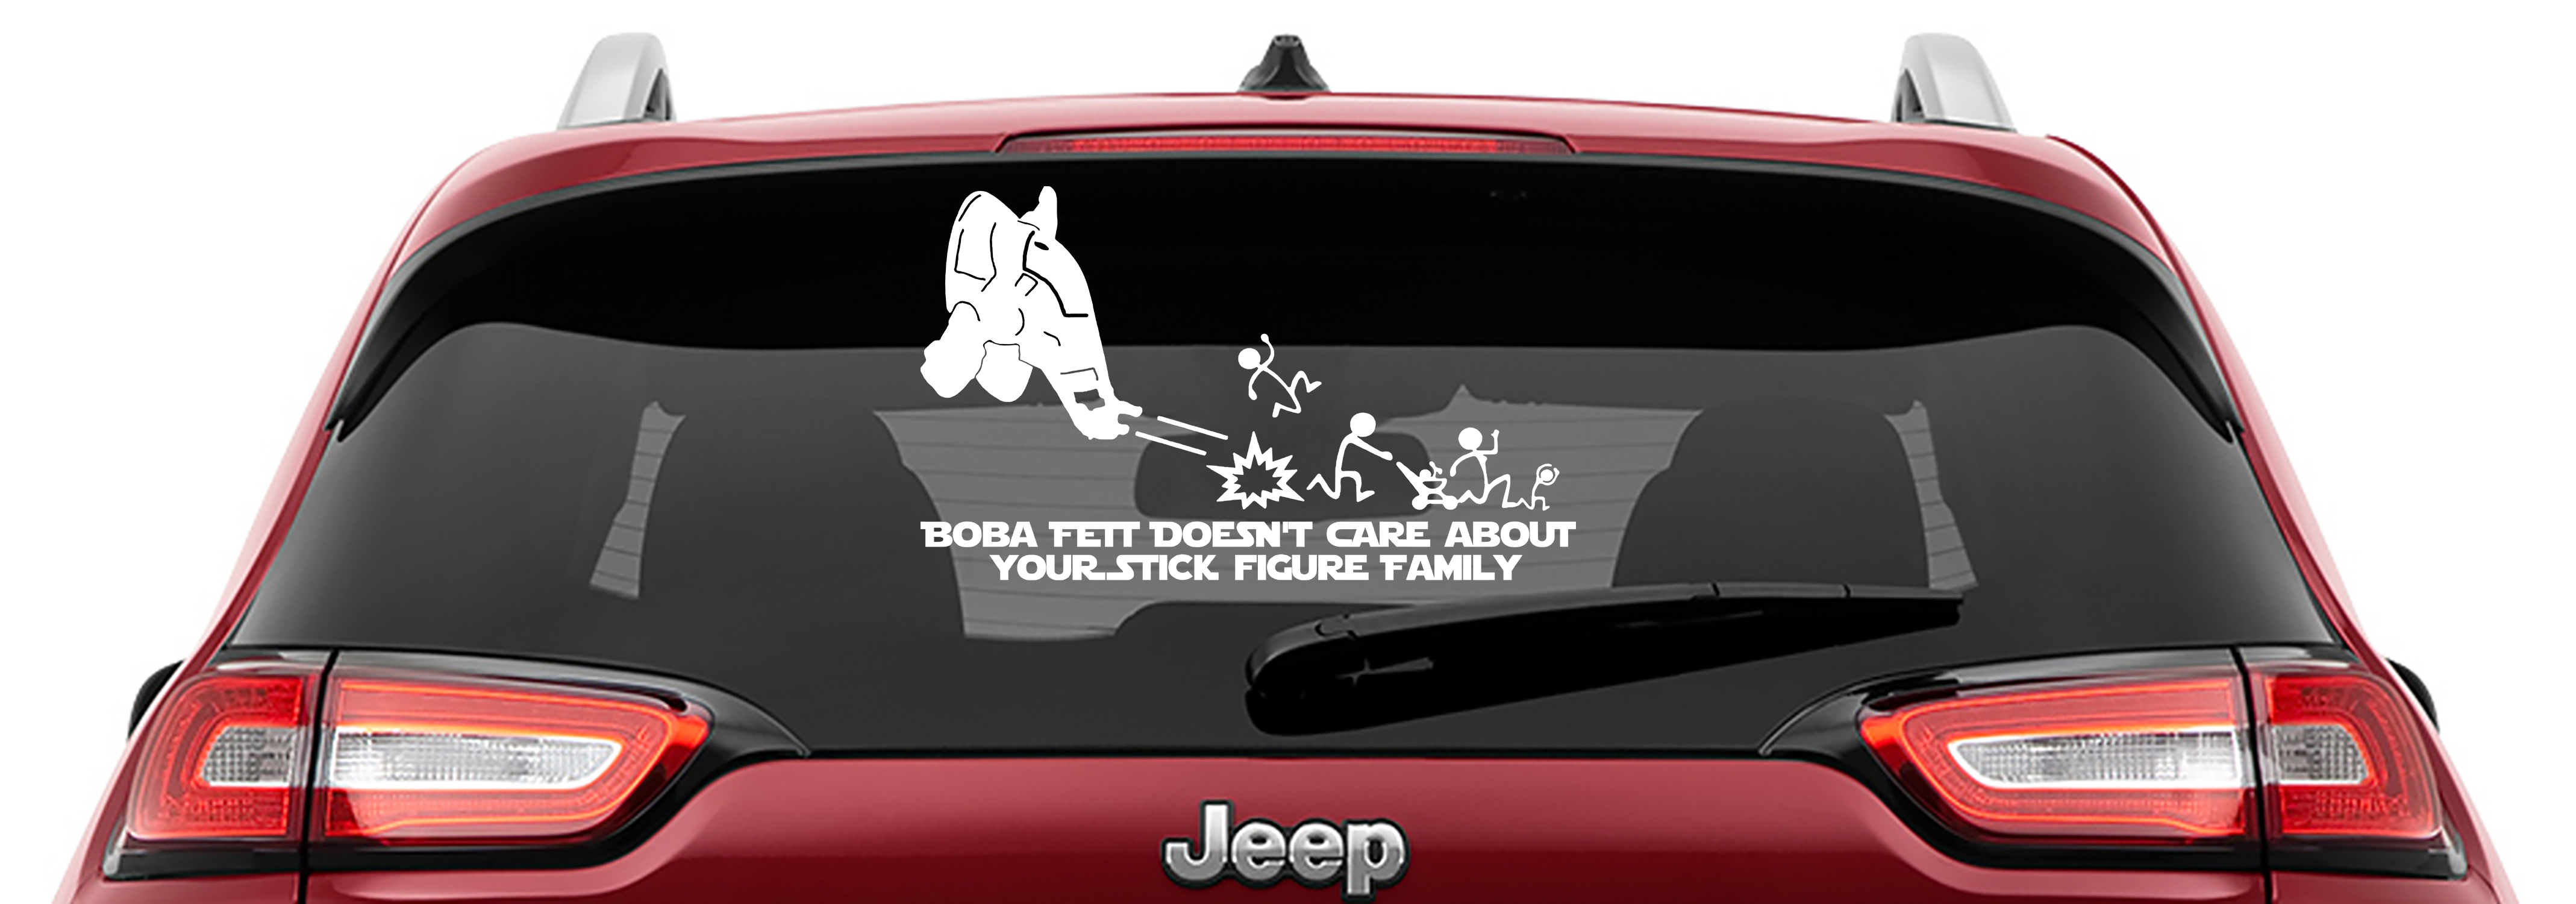 Boba Fett Doesn't Care Your Stick Figure Family Vinyl Decal